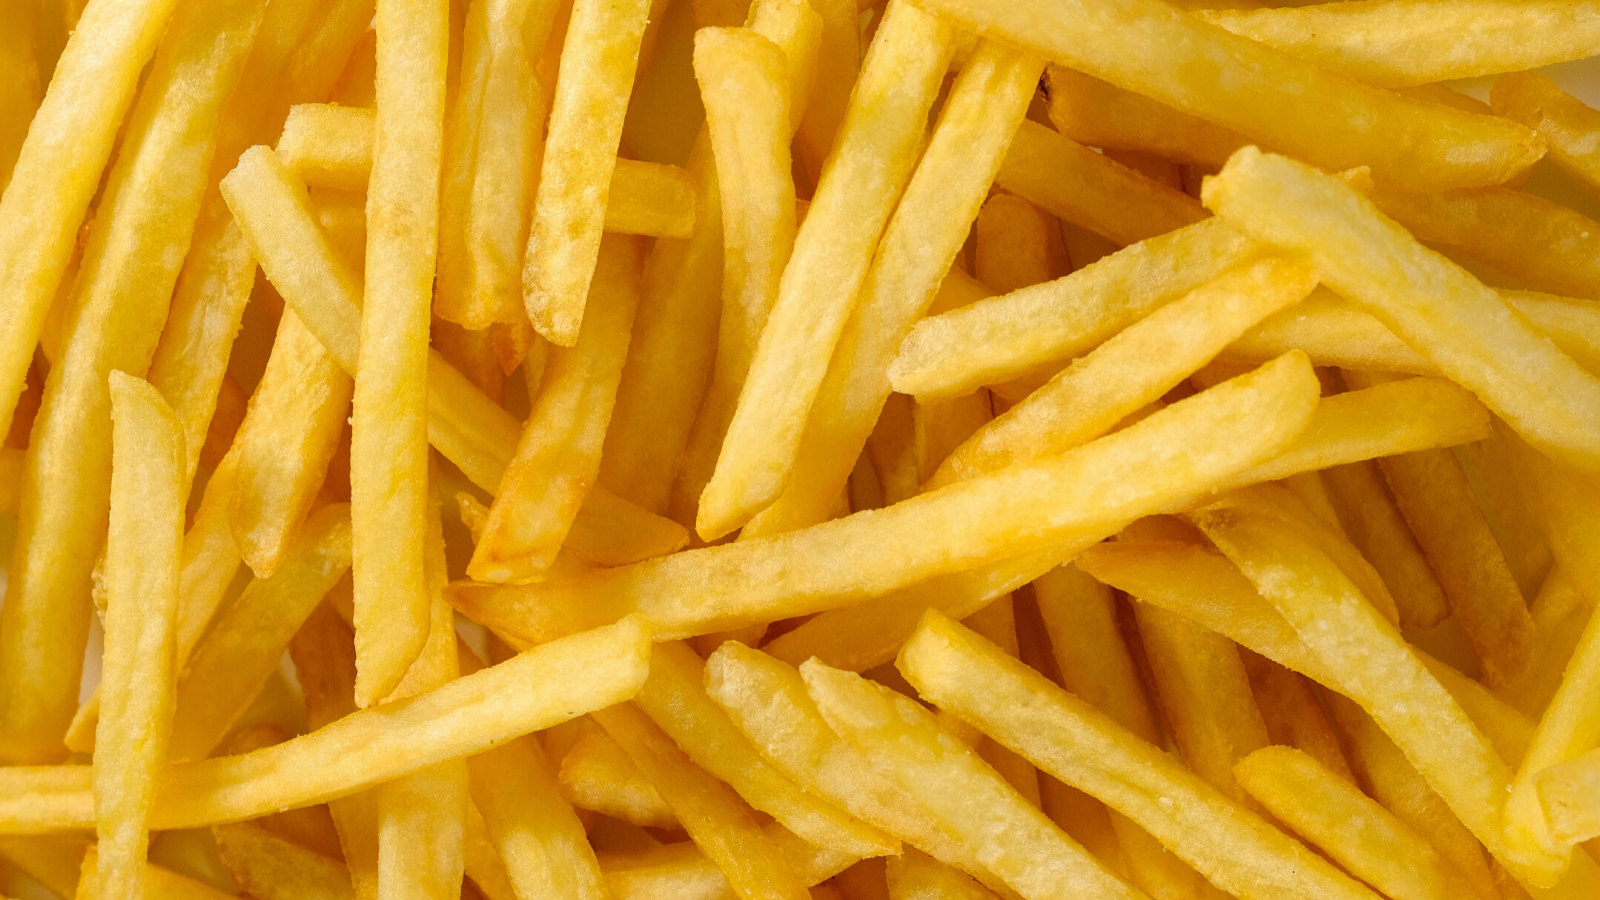 This study will make you want to throw out your deep fryer